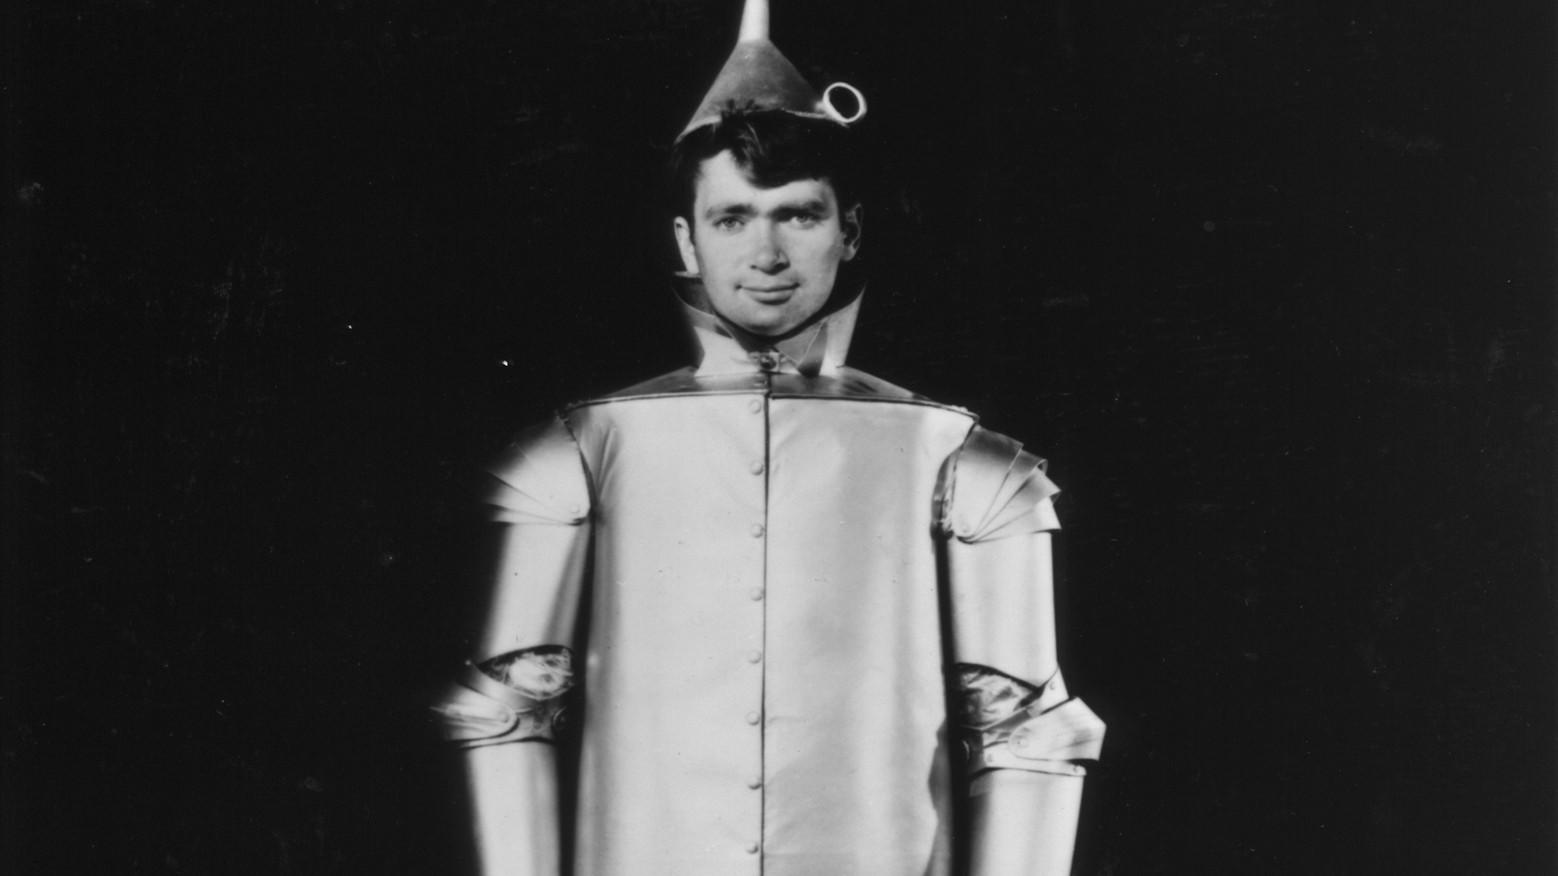 """Buddy Ebsen was the original Tin Man in """"The Wizard of Oz,"""" until he fell ill from the aluminum dust in his makeup."""